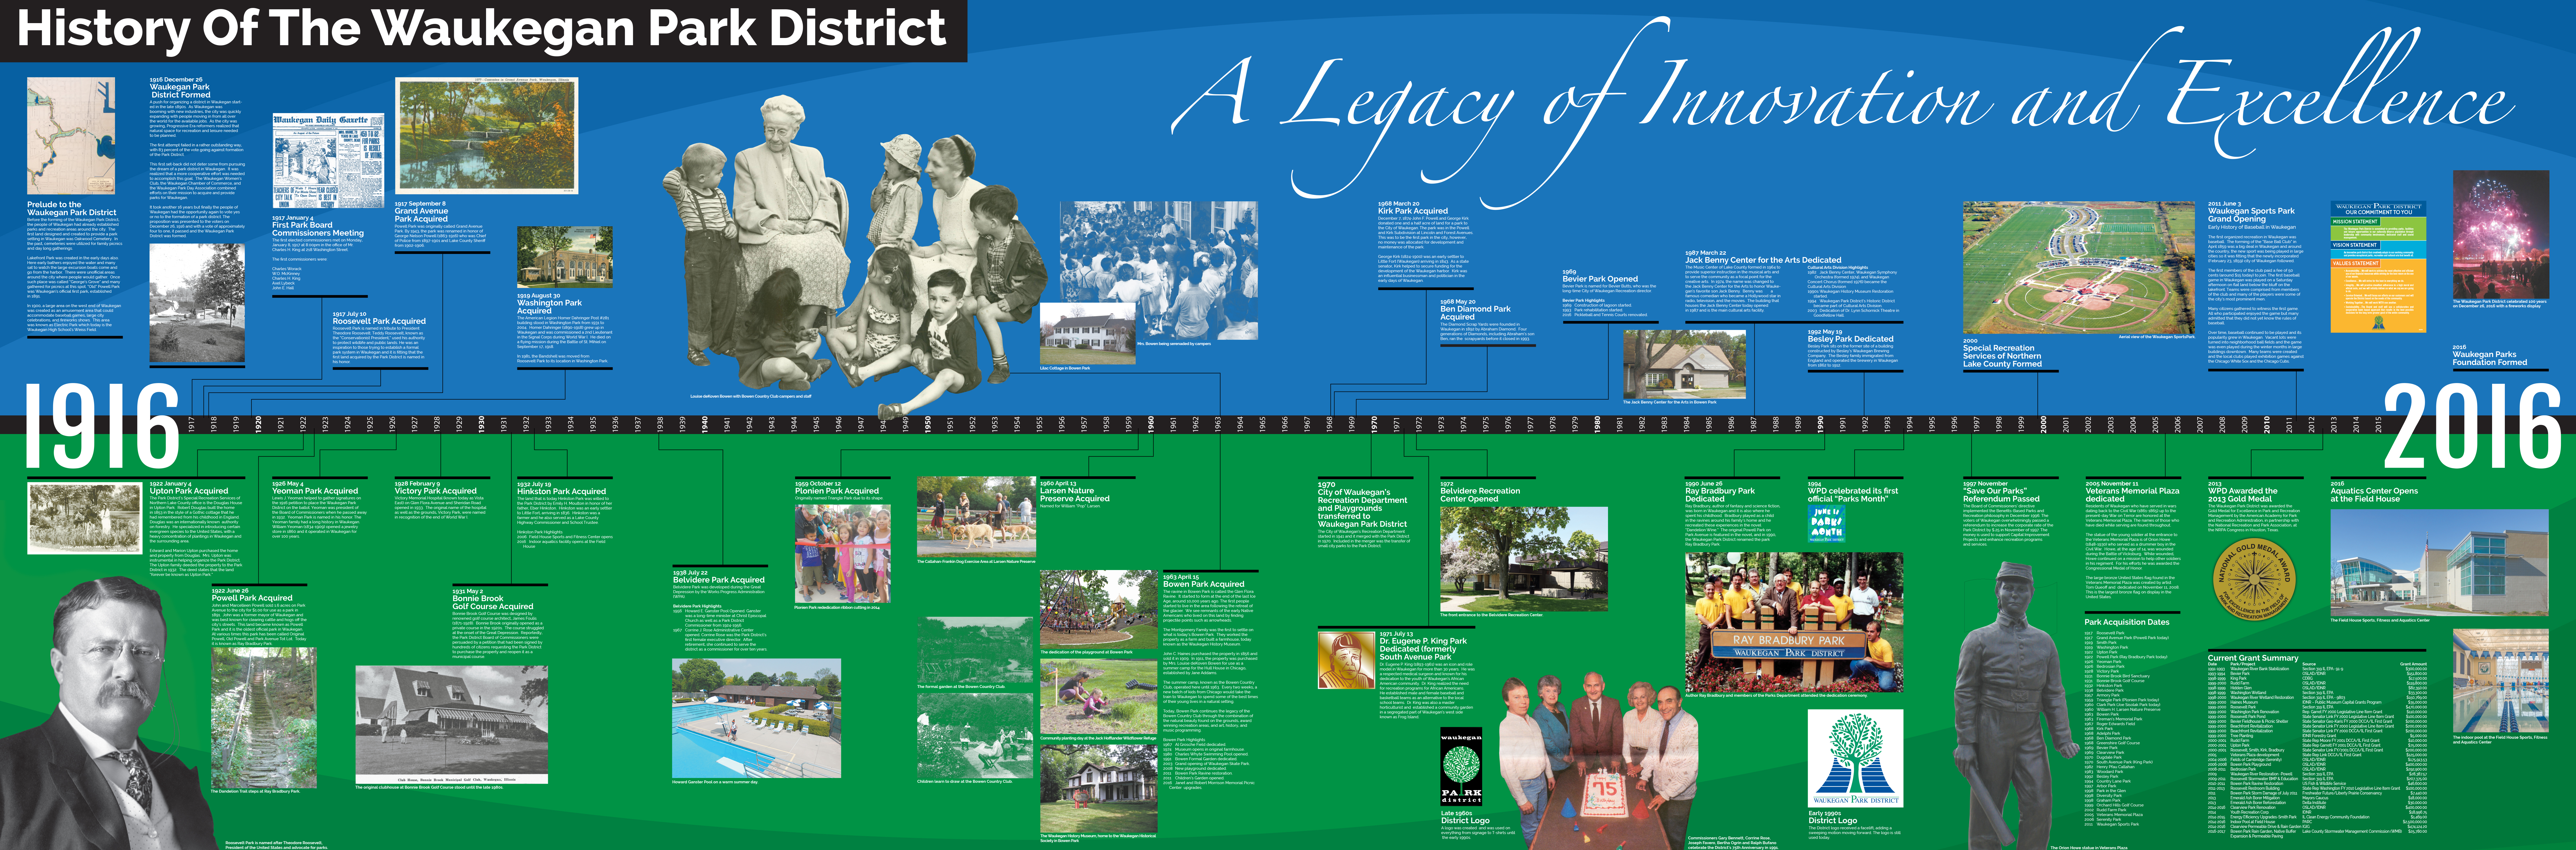 History of the Waukegan Park District Timeline